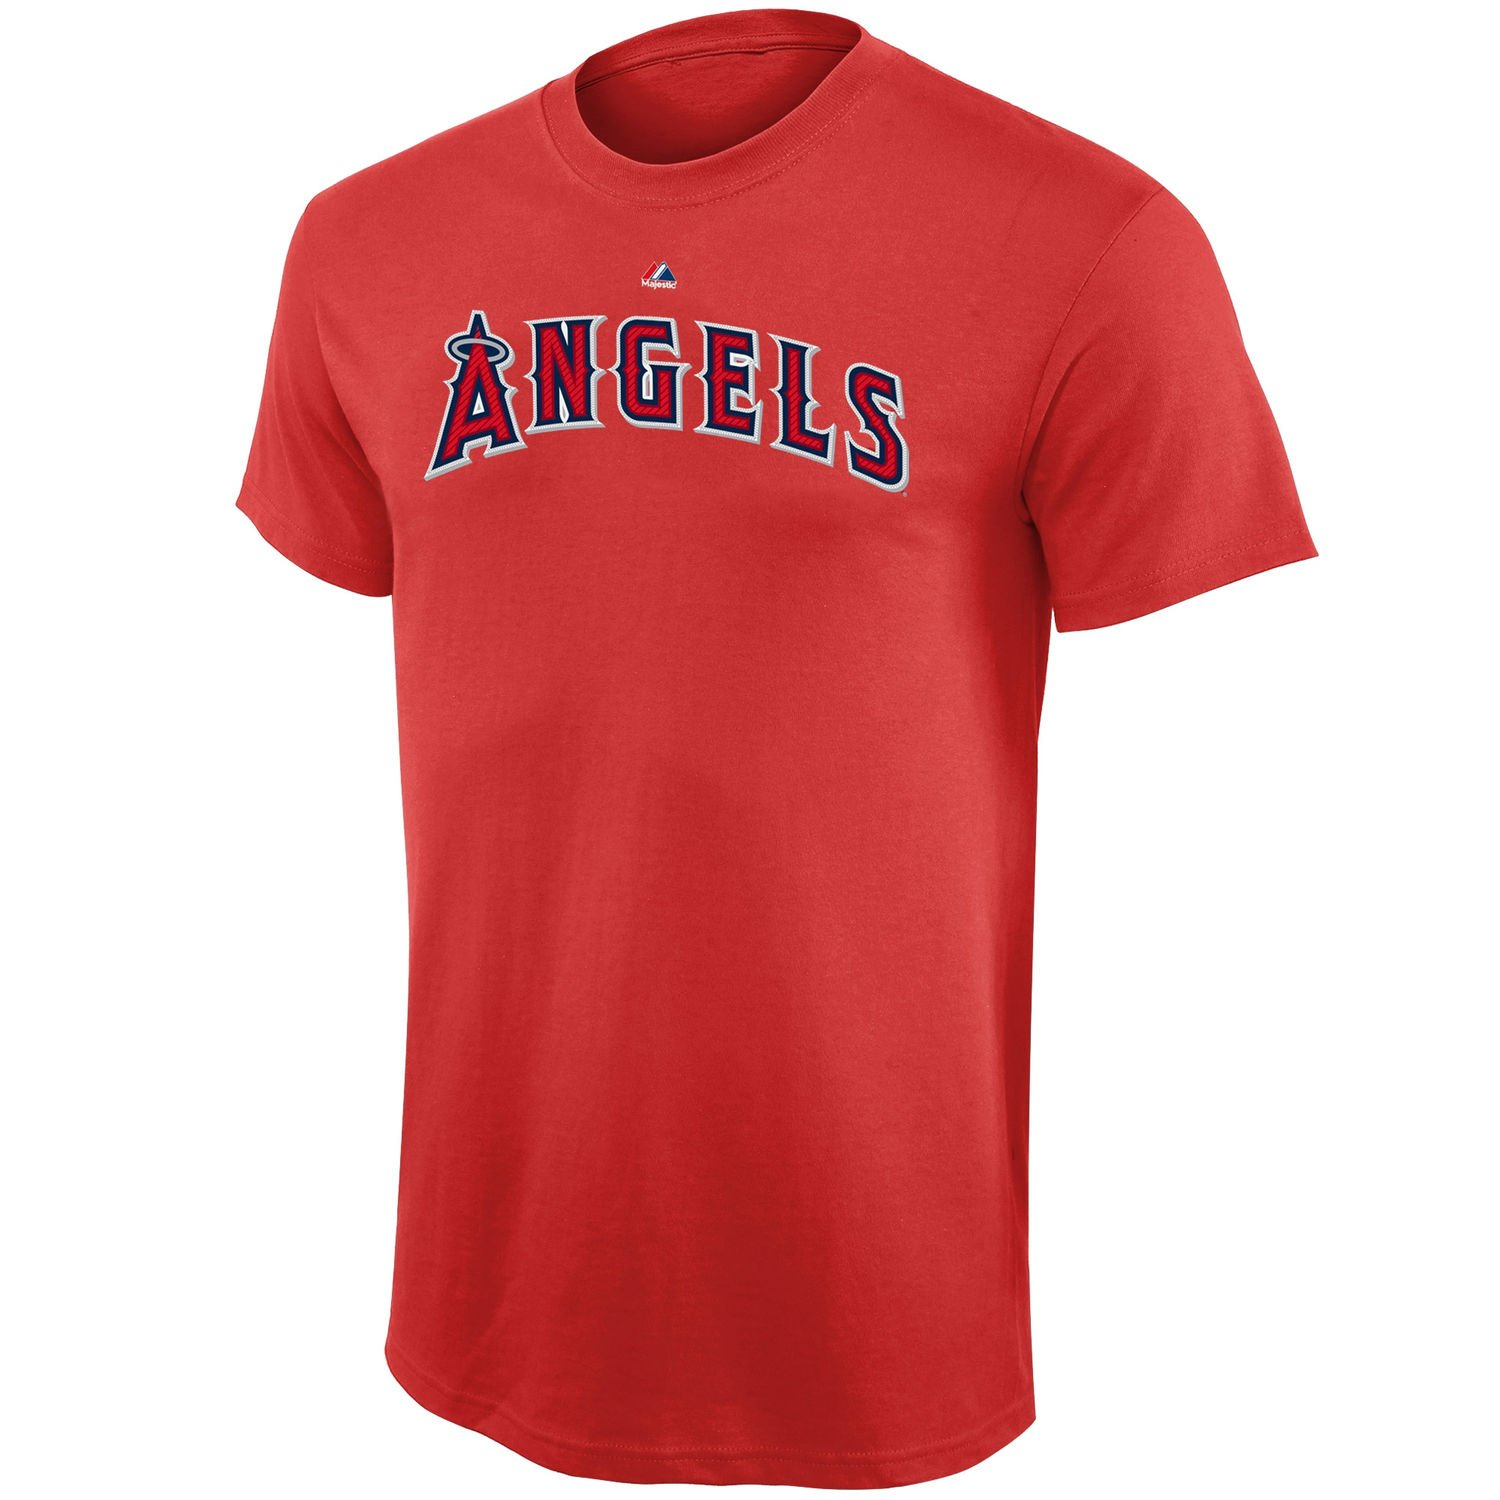 Small 8, Mike Trout MLB Youth 8-20 Performance Team Color Player Name and Number Jersey T-Shirt